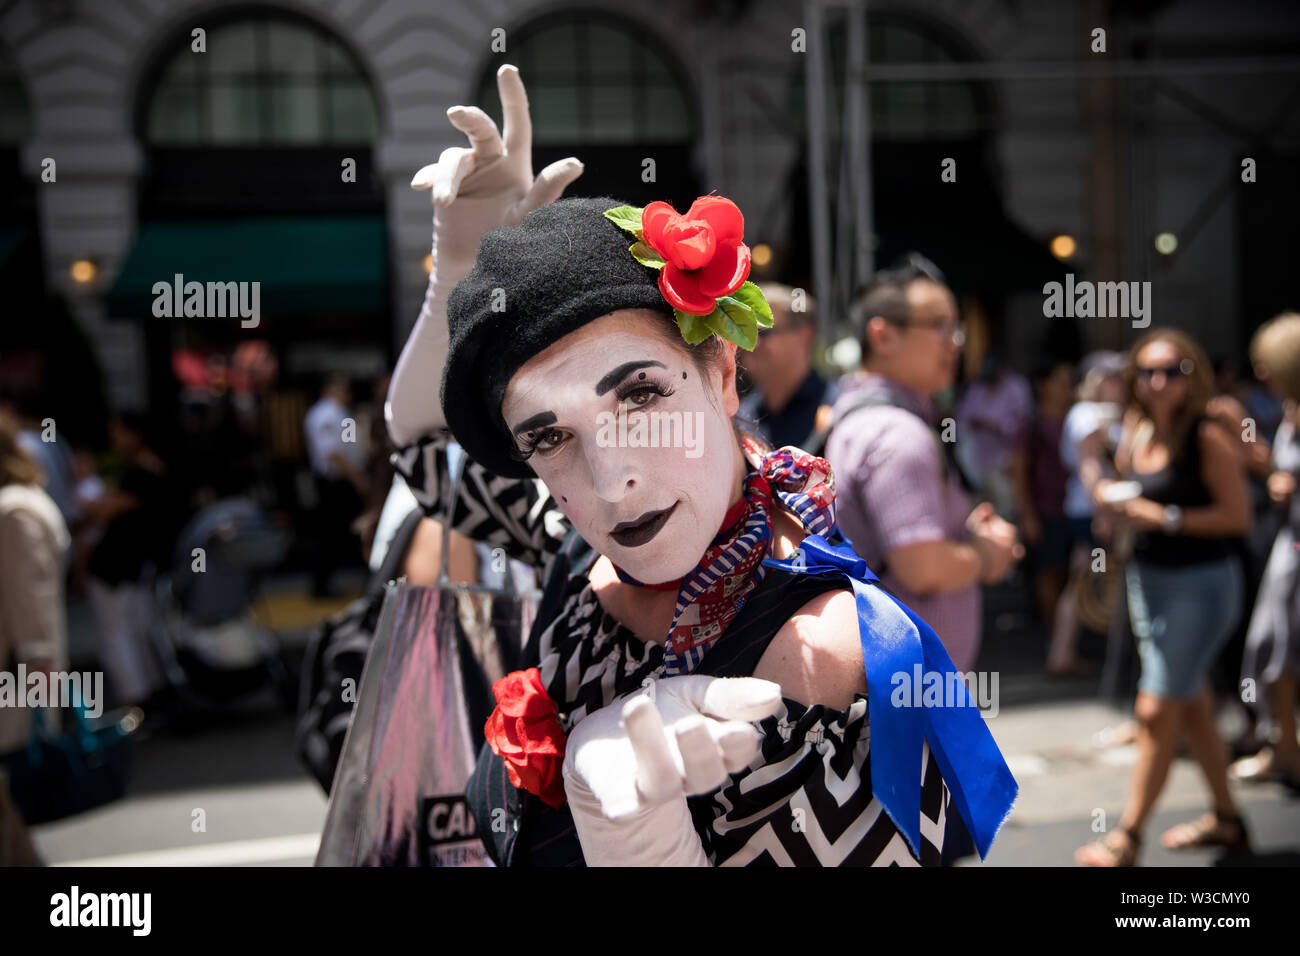 New York, USA. 14th July 2019. New York, French National Day. 14th July, 1789. Mime actress Catherine Gasta performs during the French Institute Alliance Francaise (FIAF)'s Bastille Day Celebration in New York, the United States, July 14, 2019. Bastille Day, also known as the French National Day, commemorates the start of the French Revolution and the storming of the Bastille in Paris on July 14, 1789. Credit: Michael Nagle/Xinhua/Alamy Live News - Stock Image